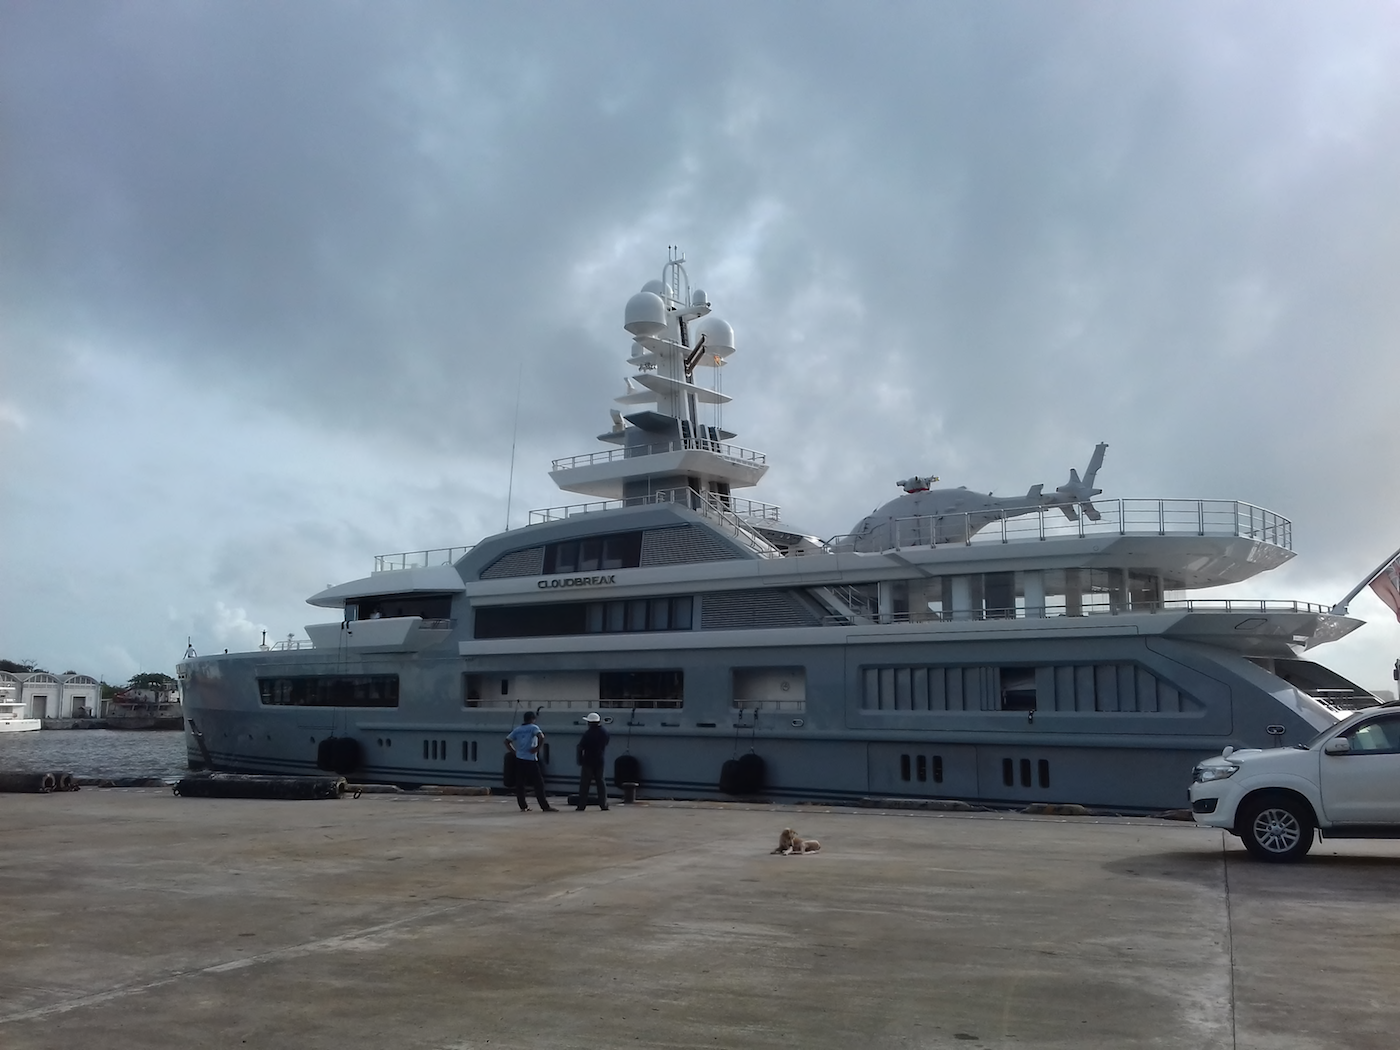 Luxury charter yacht CLOUDBREAK in Sri Lanka before moving onto the Mediterranean